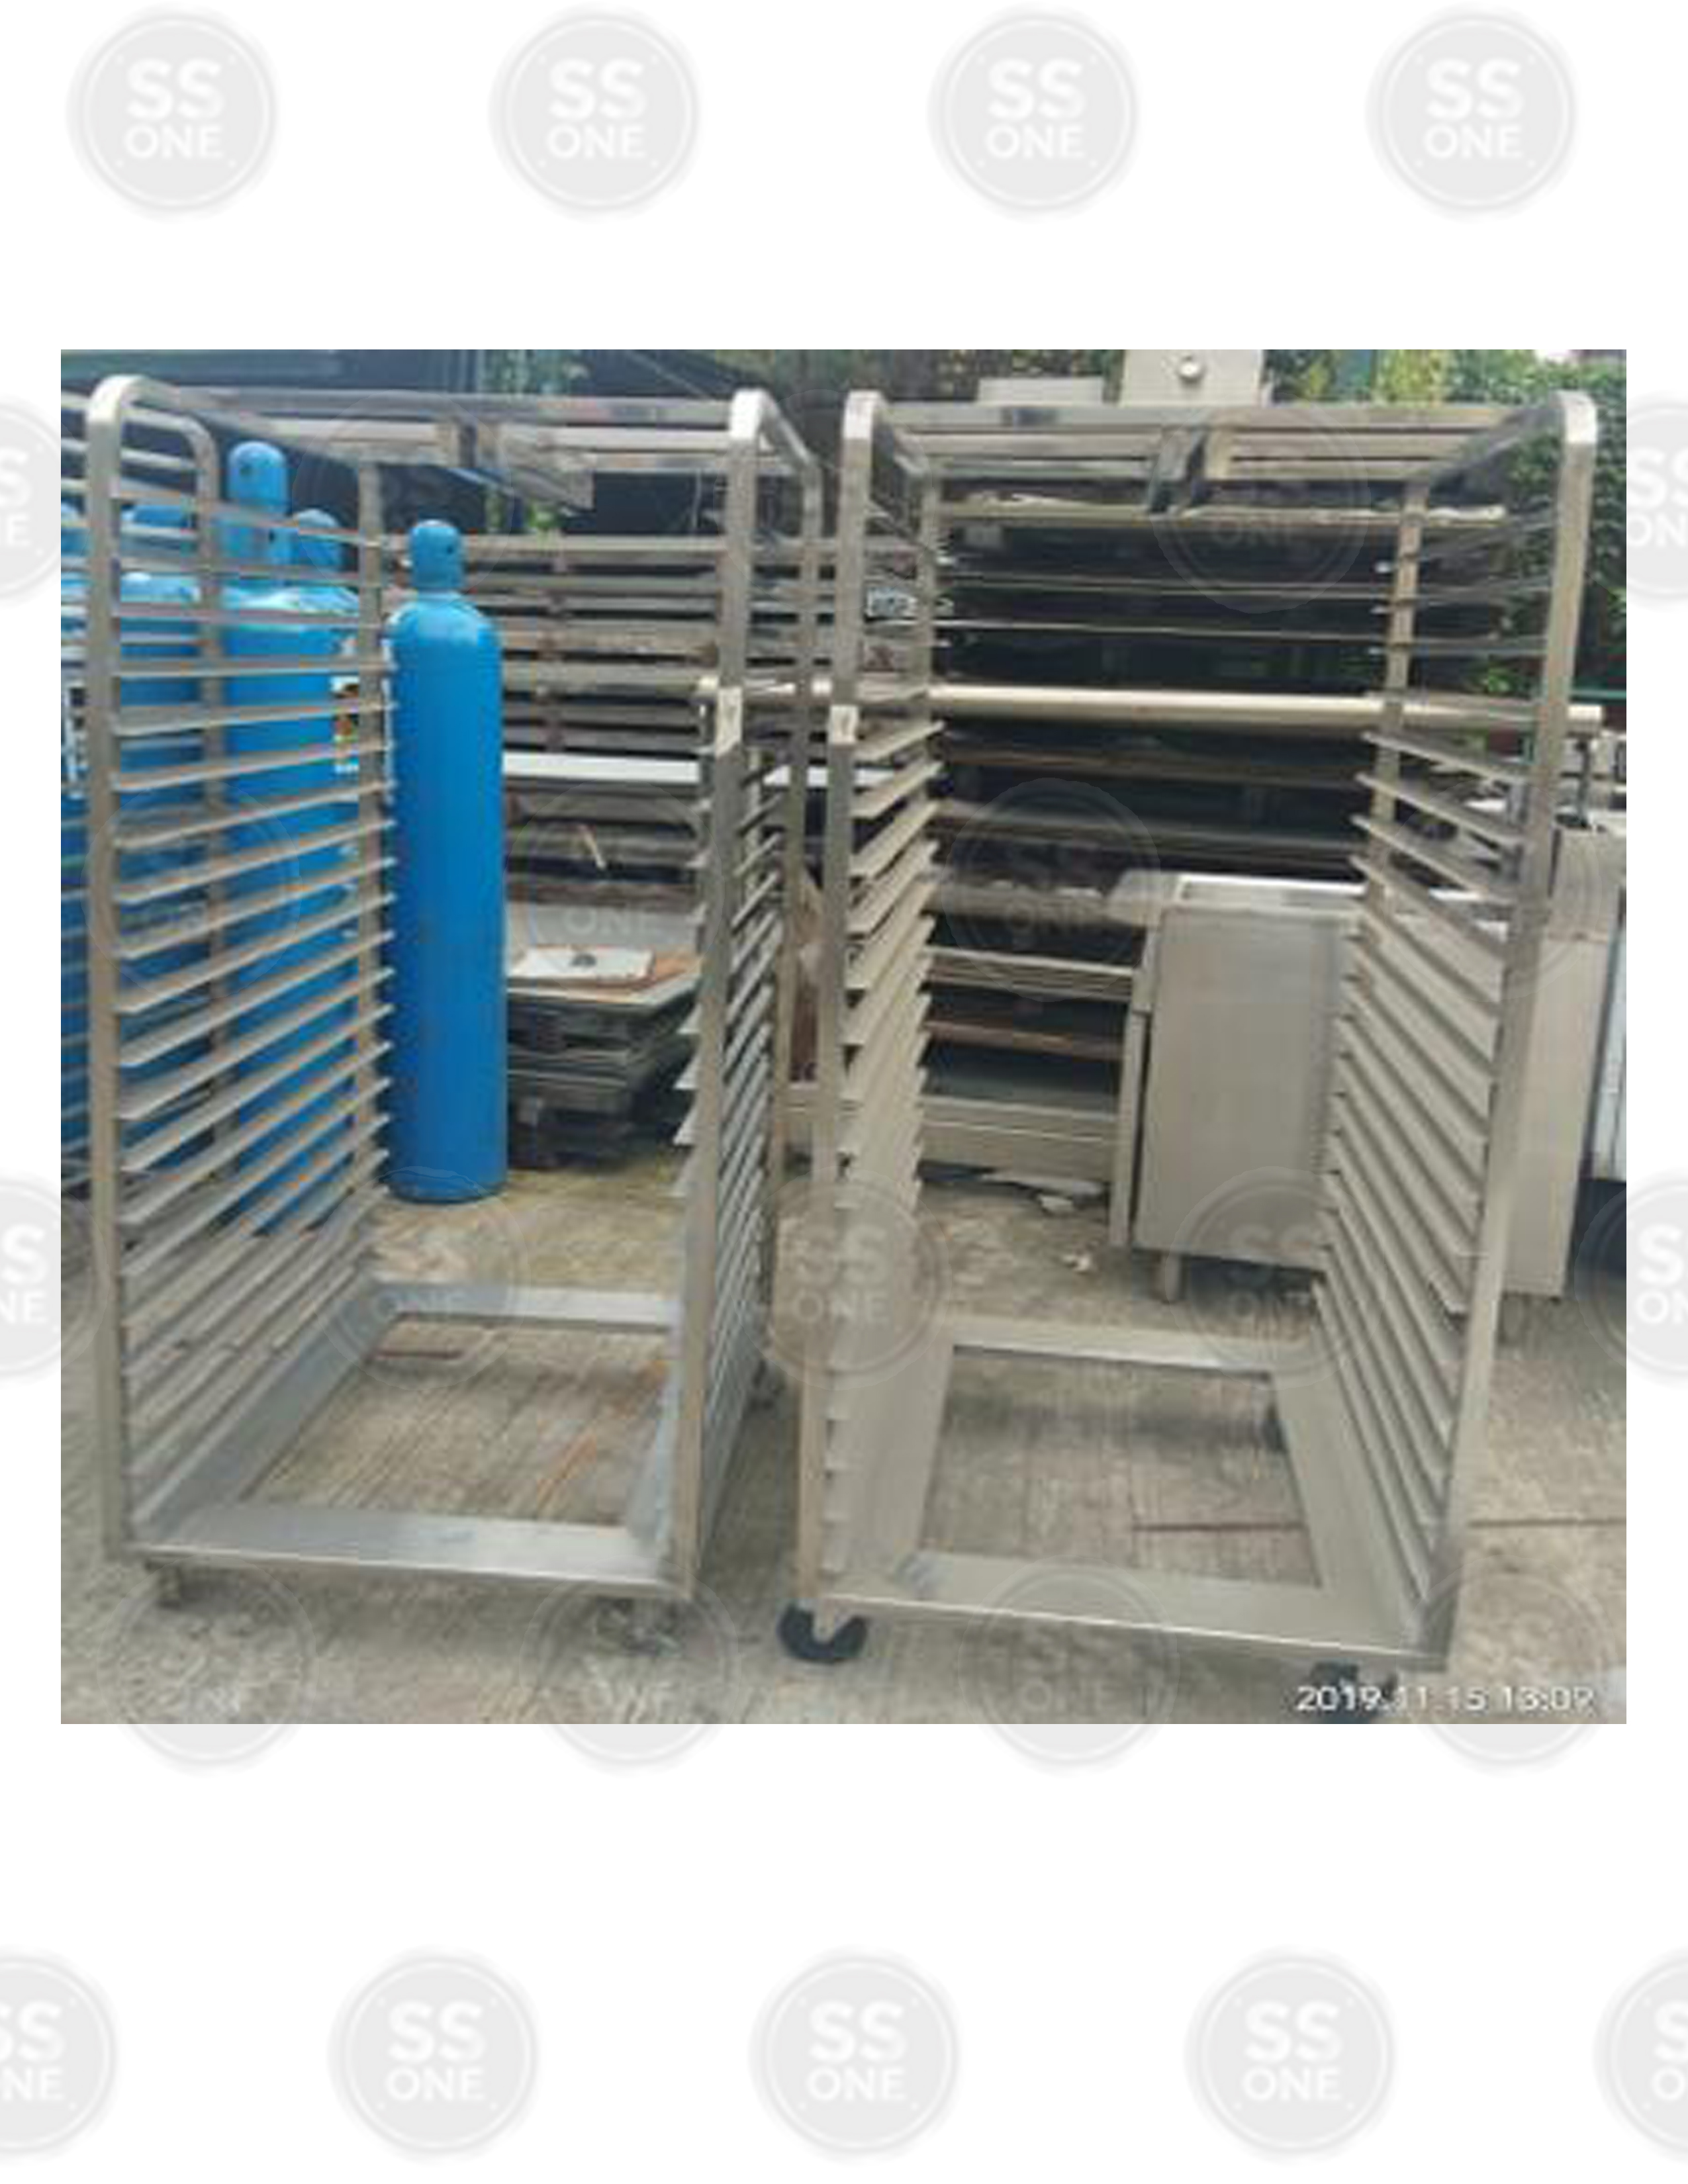 MOBILE UTILITY RACK 4 LAYER BENDED TYPE